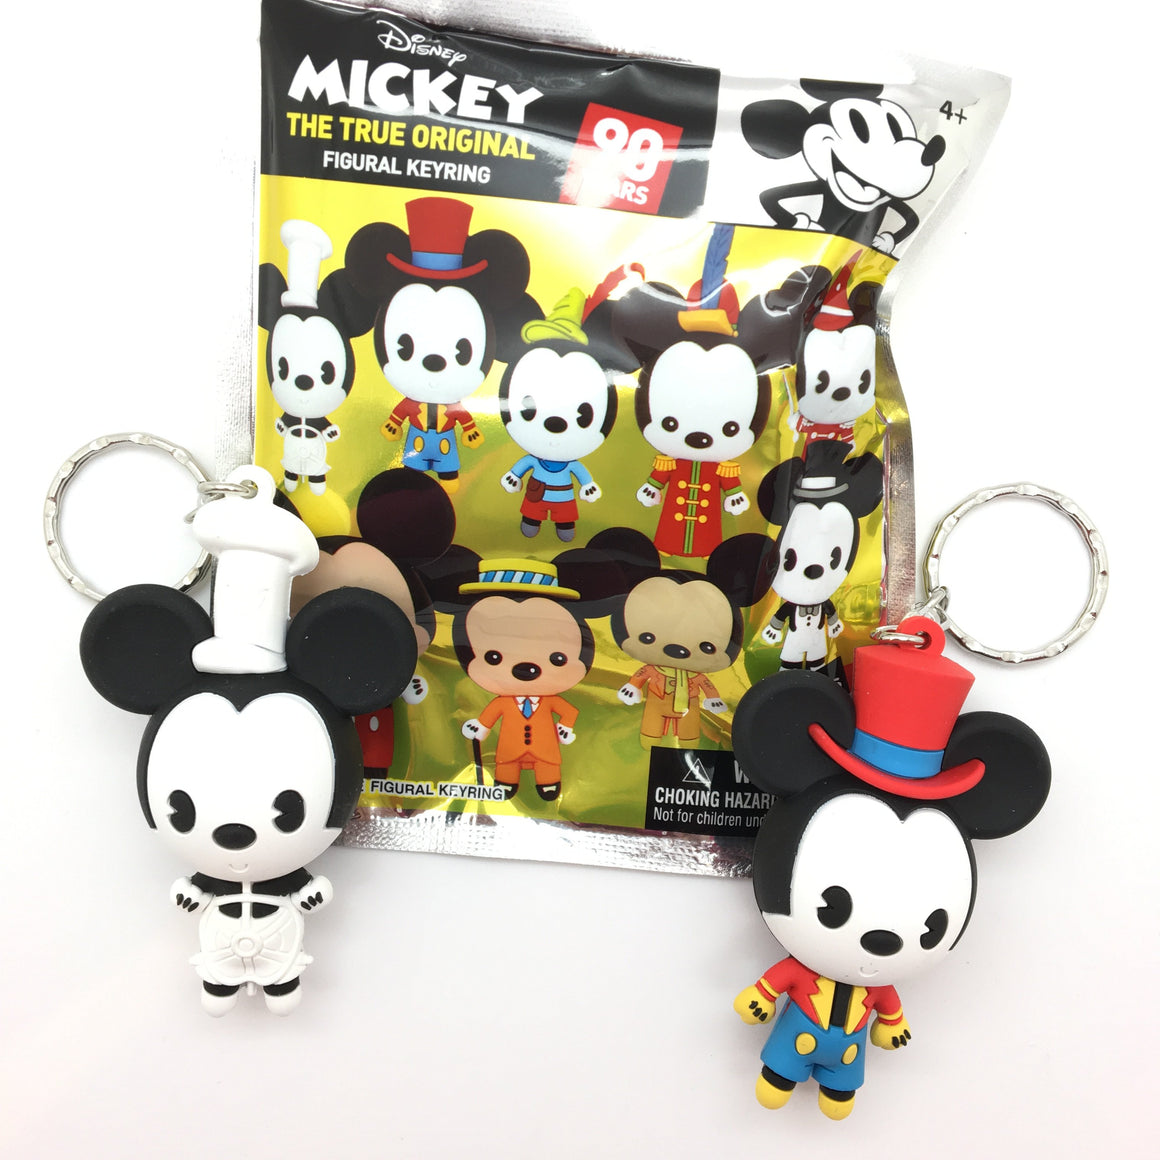 Disney Mickey Through The Years Figural Keychains by Monogram